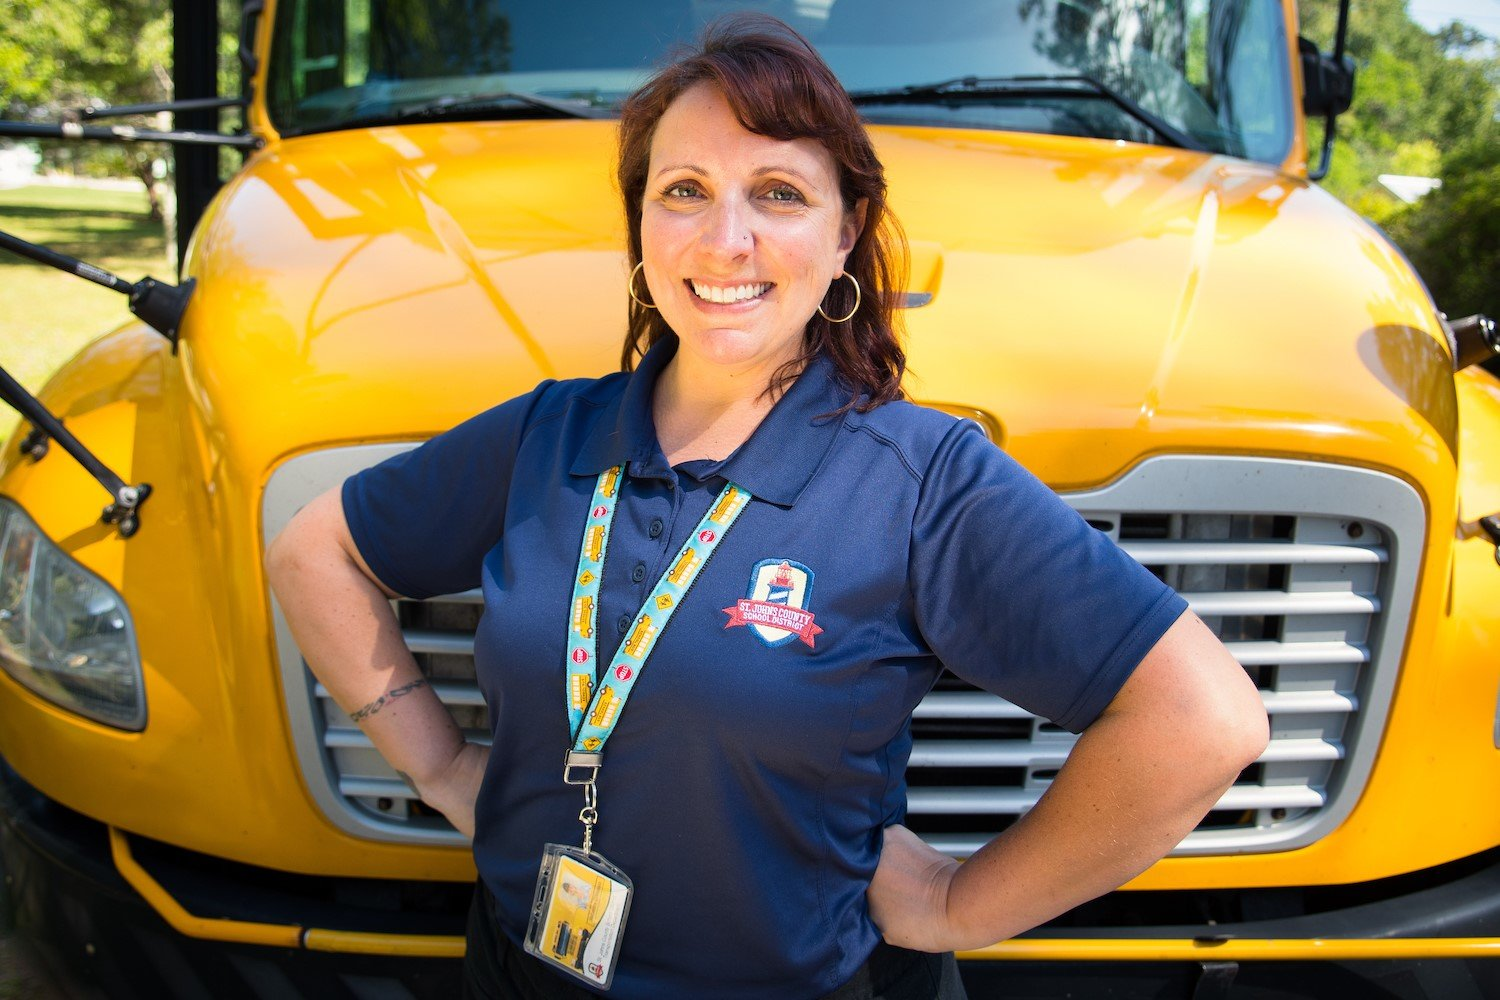 The St. Johns County School District (SJCSD)'s Transportation Department is actively recruiting new bus operators.